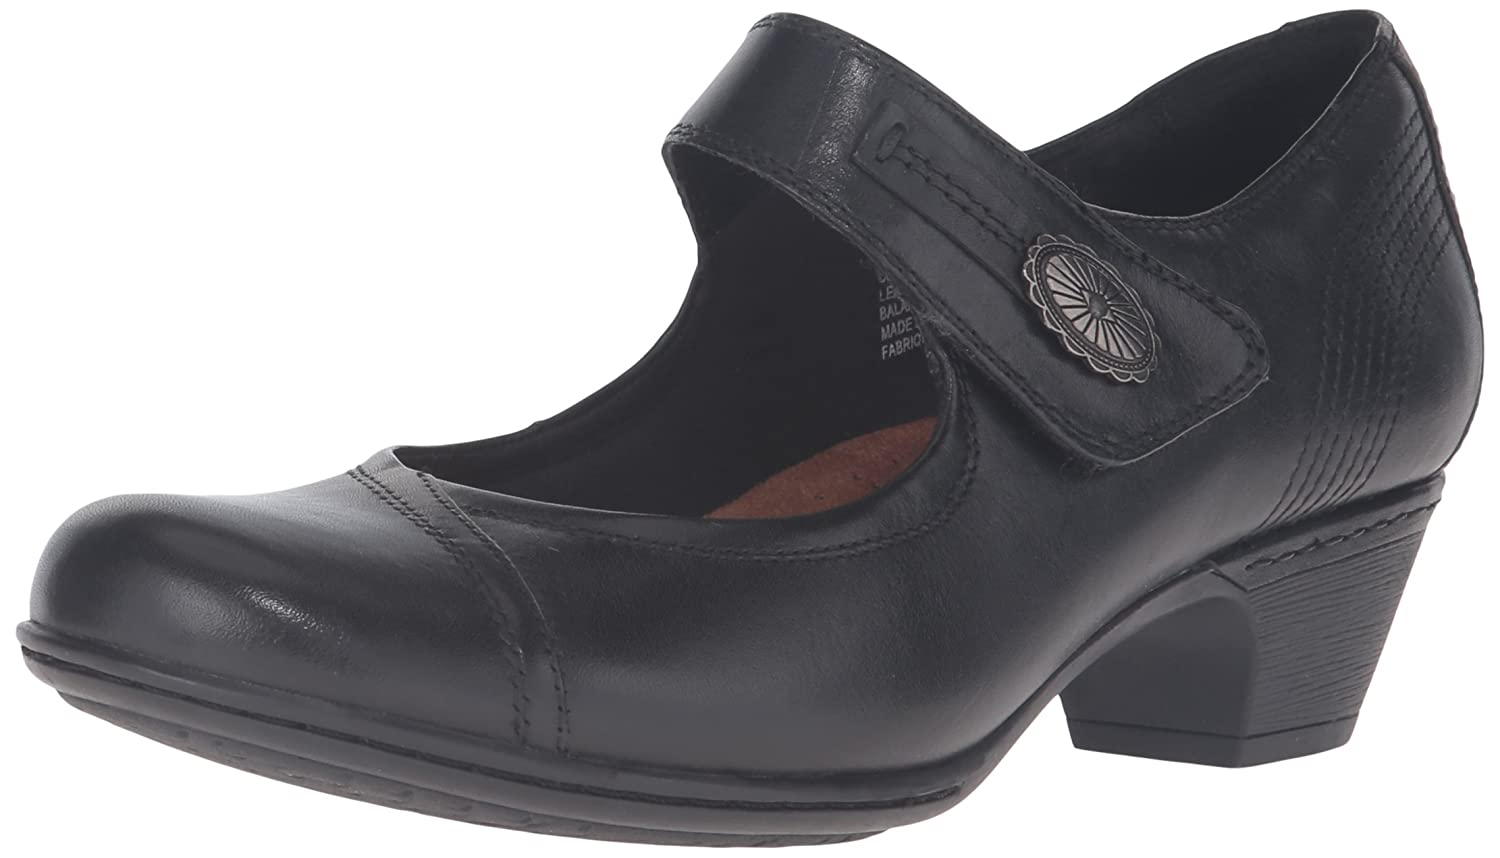 Rockport Women's Cobb Hill Abigail Dress Pump B01AK6U7TW 7.5 B(M) US|Black